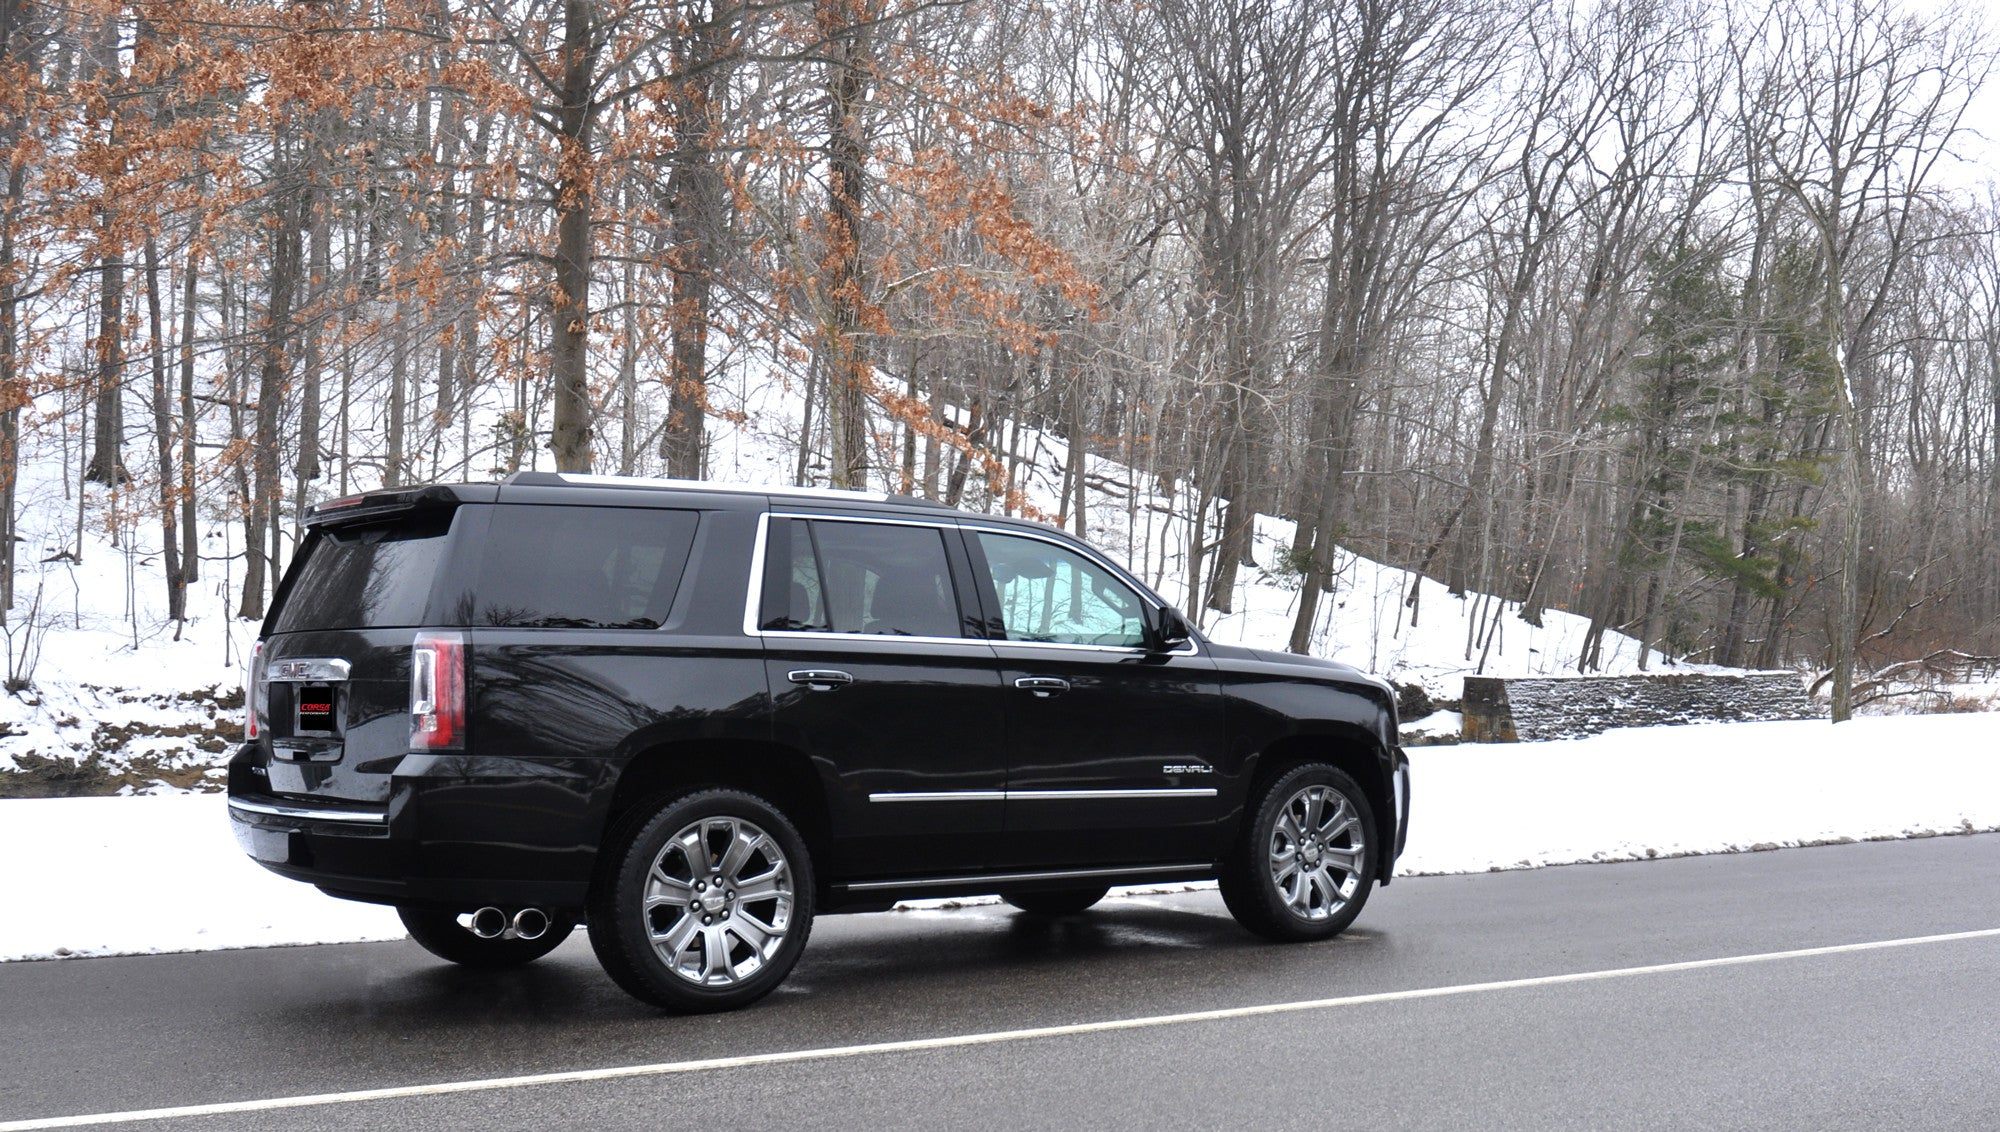 grove vehicles denali sale gmc in for yukon photo cottage vehiclesearchresults used or vehicle